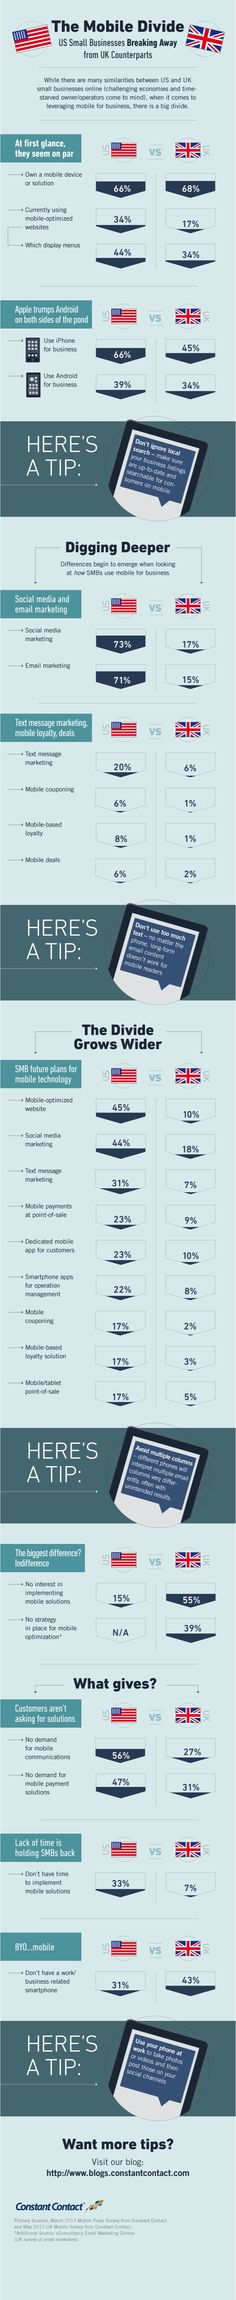 A handy #infographic about the differences between #UK and #USA small #businesses